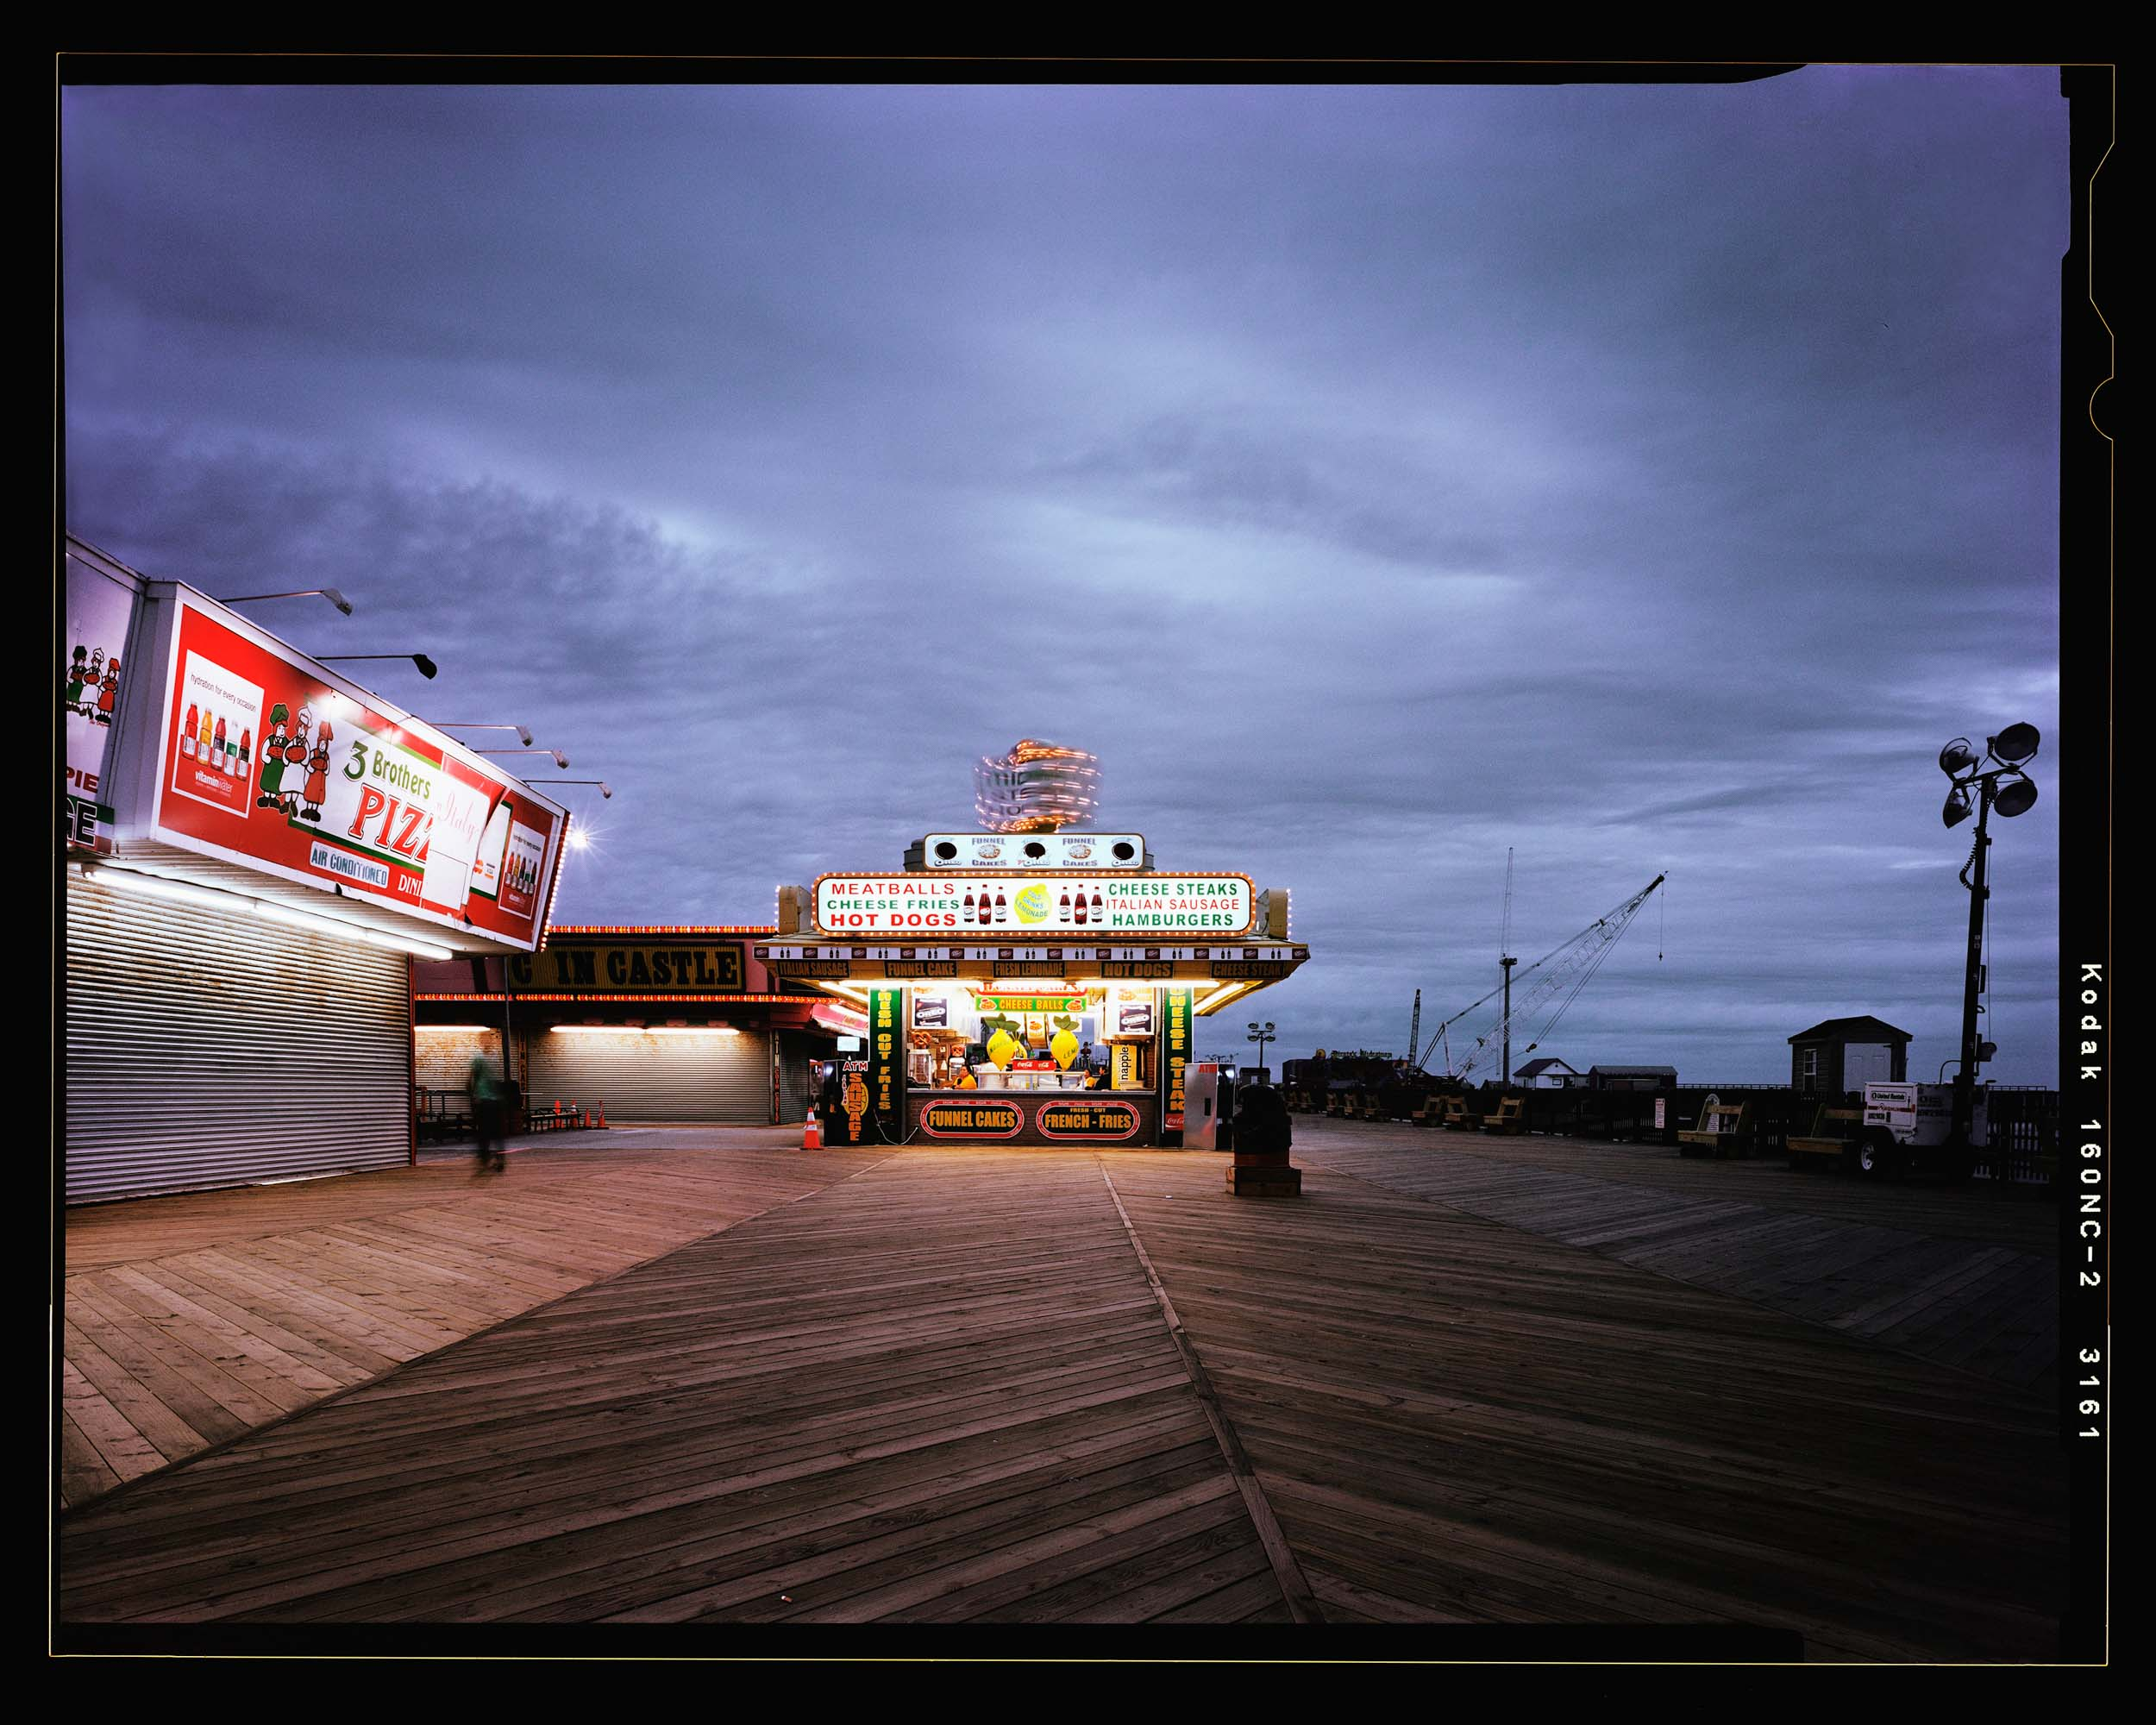 Midway, Seaside,  NJ. 2012. 4x5 Shen Hao.    This is the photograph that started the whole project. I love this photograph. The sunset light fading combined with the lights and glowing signs along with the crane showing the rebuilding in the background make this one of my favorite images. Also, the cheese steaks and sausage sandwiches are pretty fantastic.